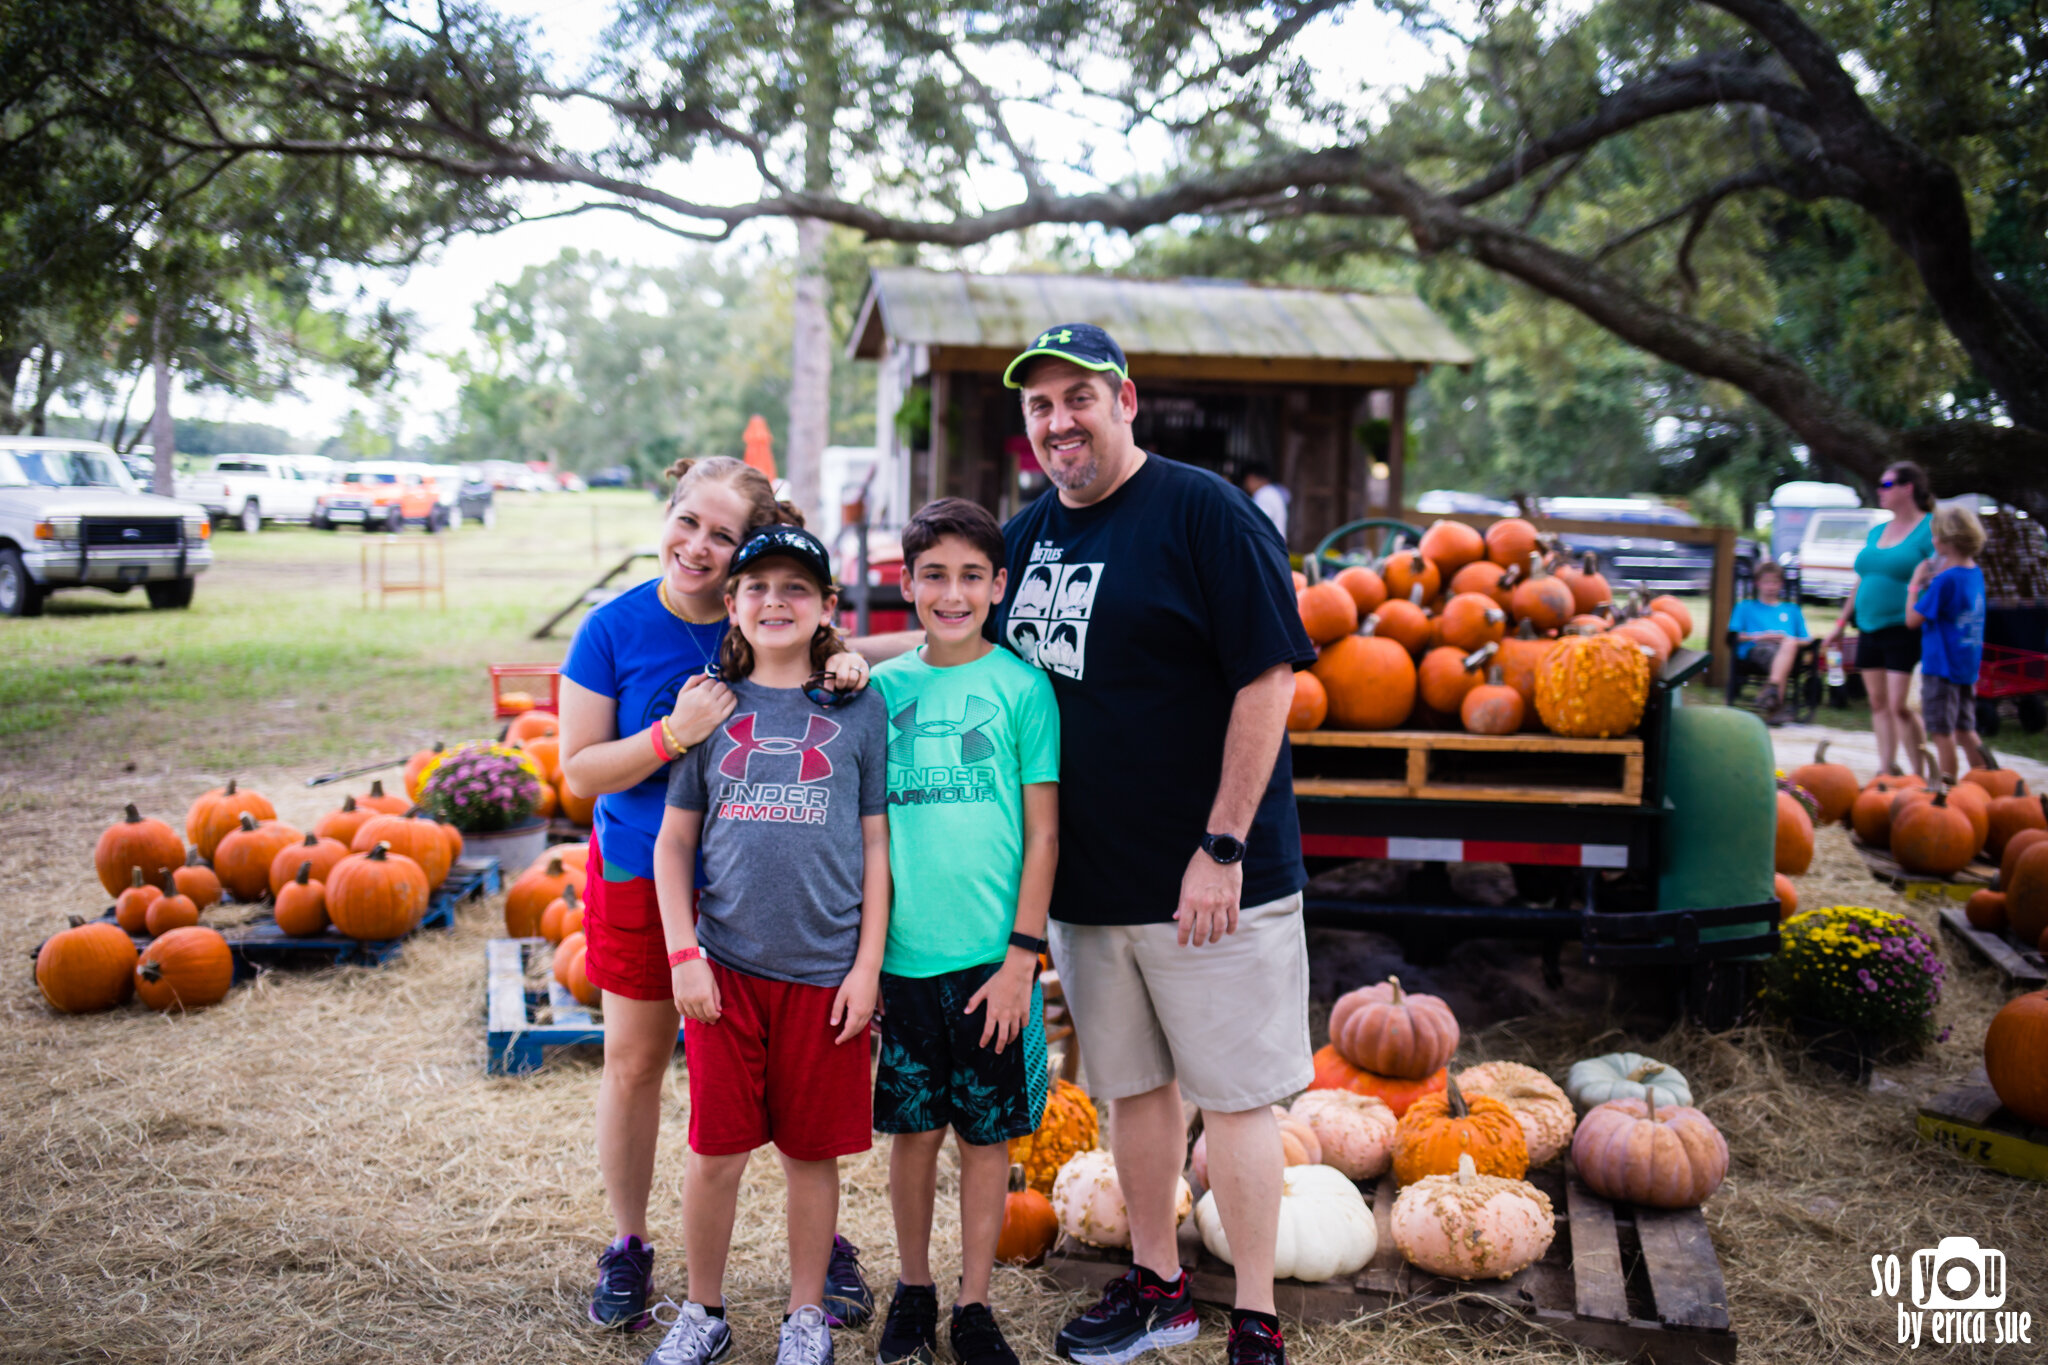 so-you-by-erica-sue-disney-photography-family-mickey-not-so-scary-partin-ranch-corn-maze-old-town-orlando-4238.jpg